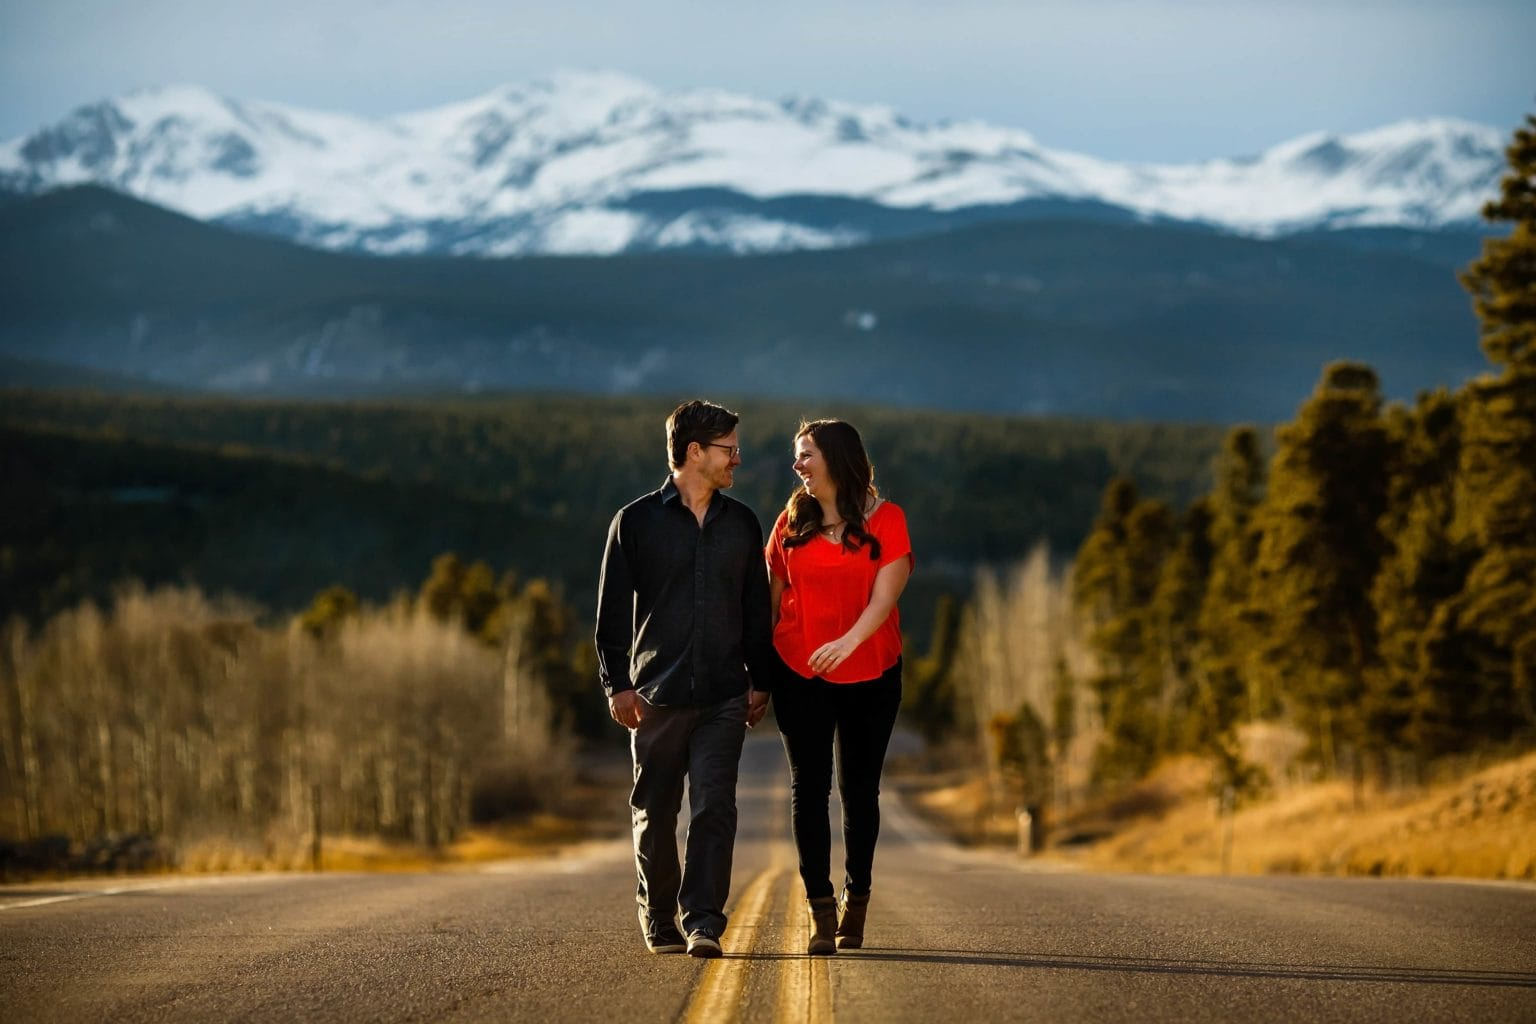 Brian and Kate hold hands and walk along Colorado highway 119 in Black Hawk, Colorado with the snow capped mountains seen in the background during their Spring Golden Gate Canyon State Park engagement